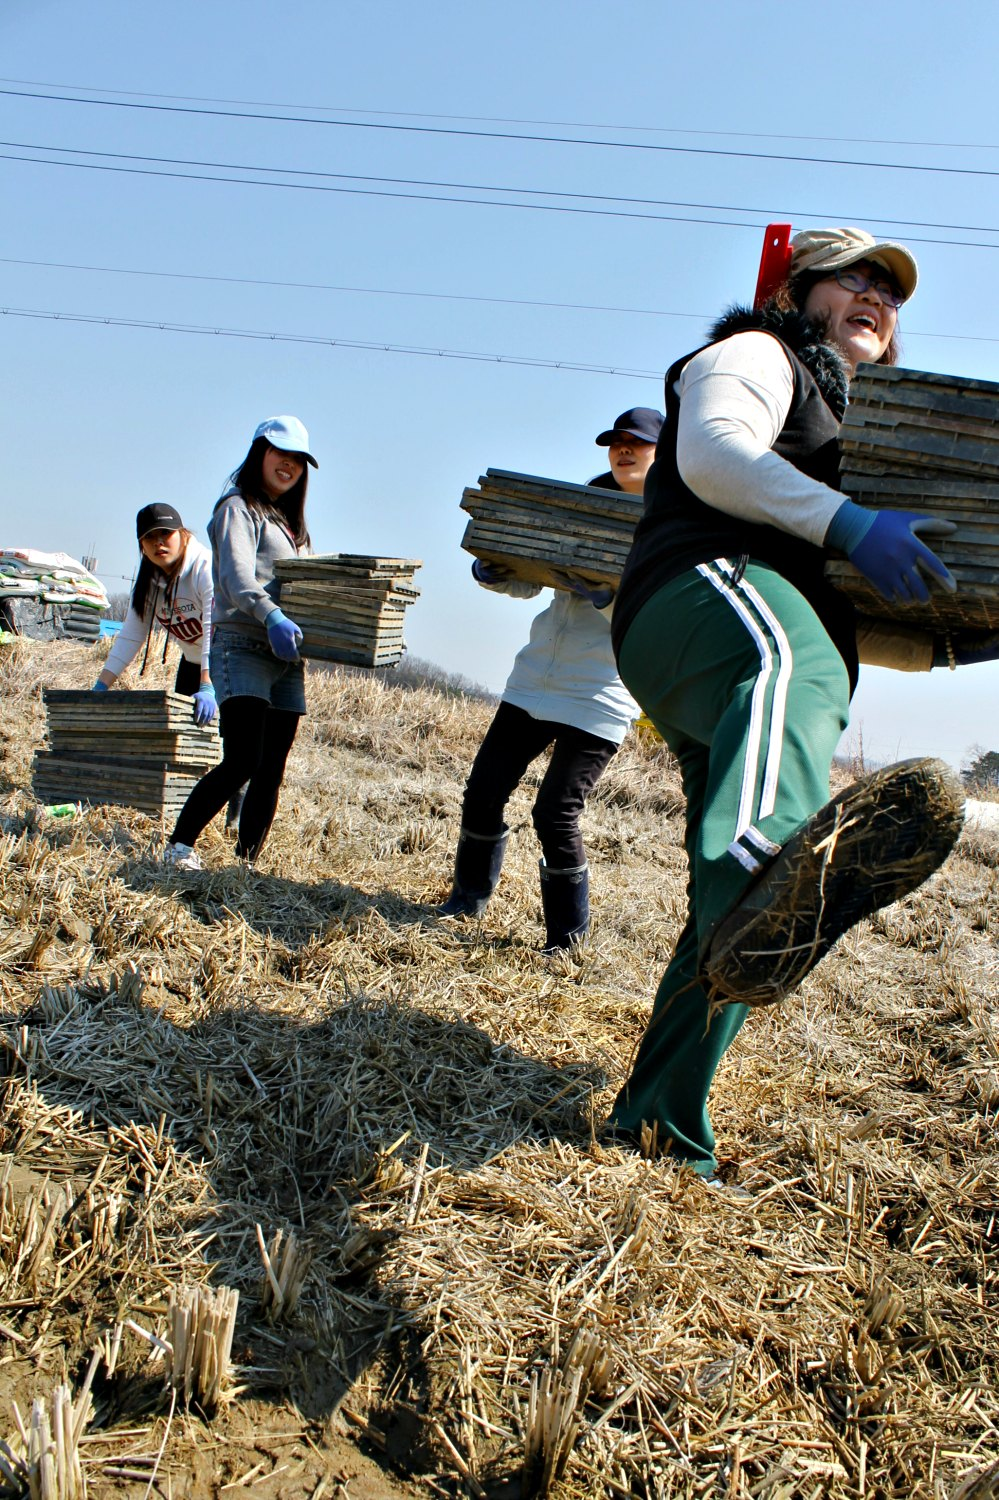 Making contact with other people in the organic movement is one of WWOOF's ideals. Photo:WWOOF